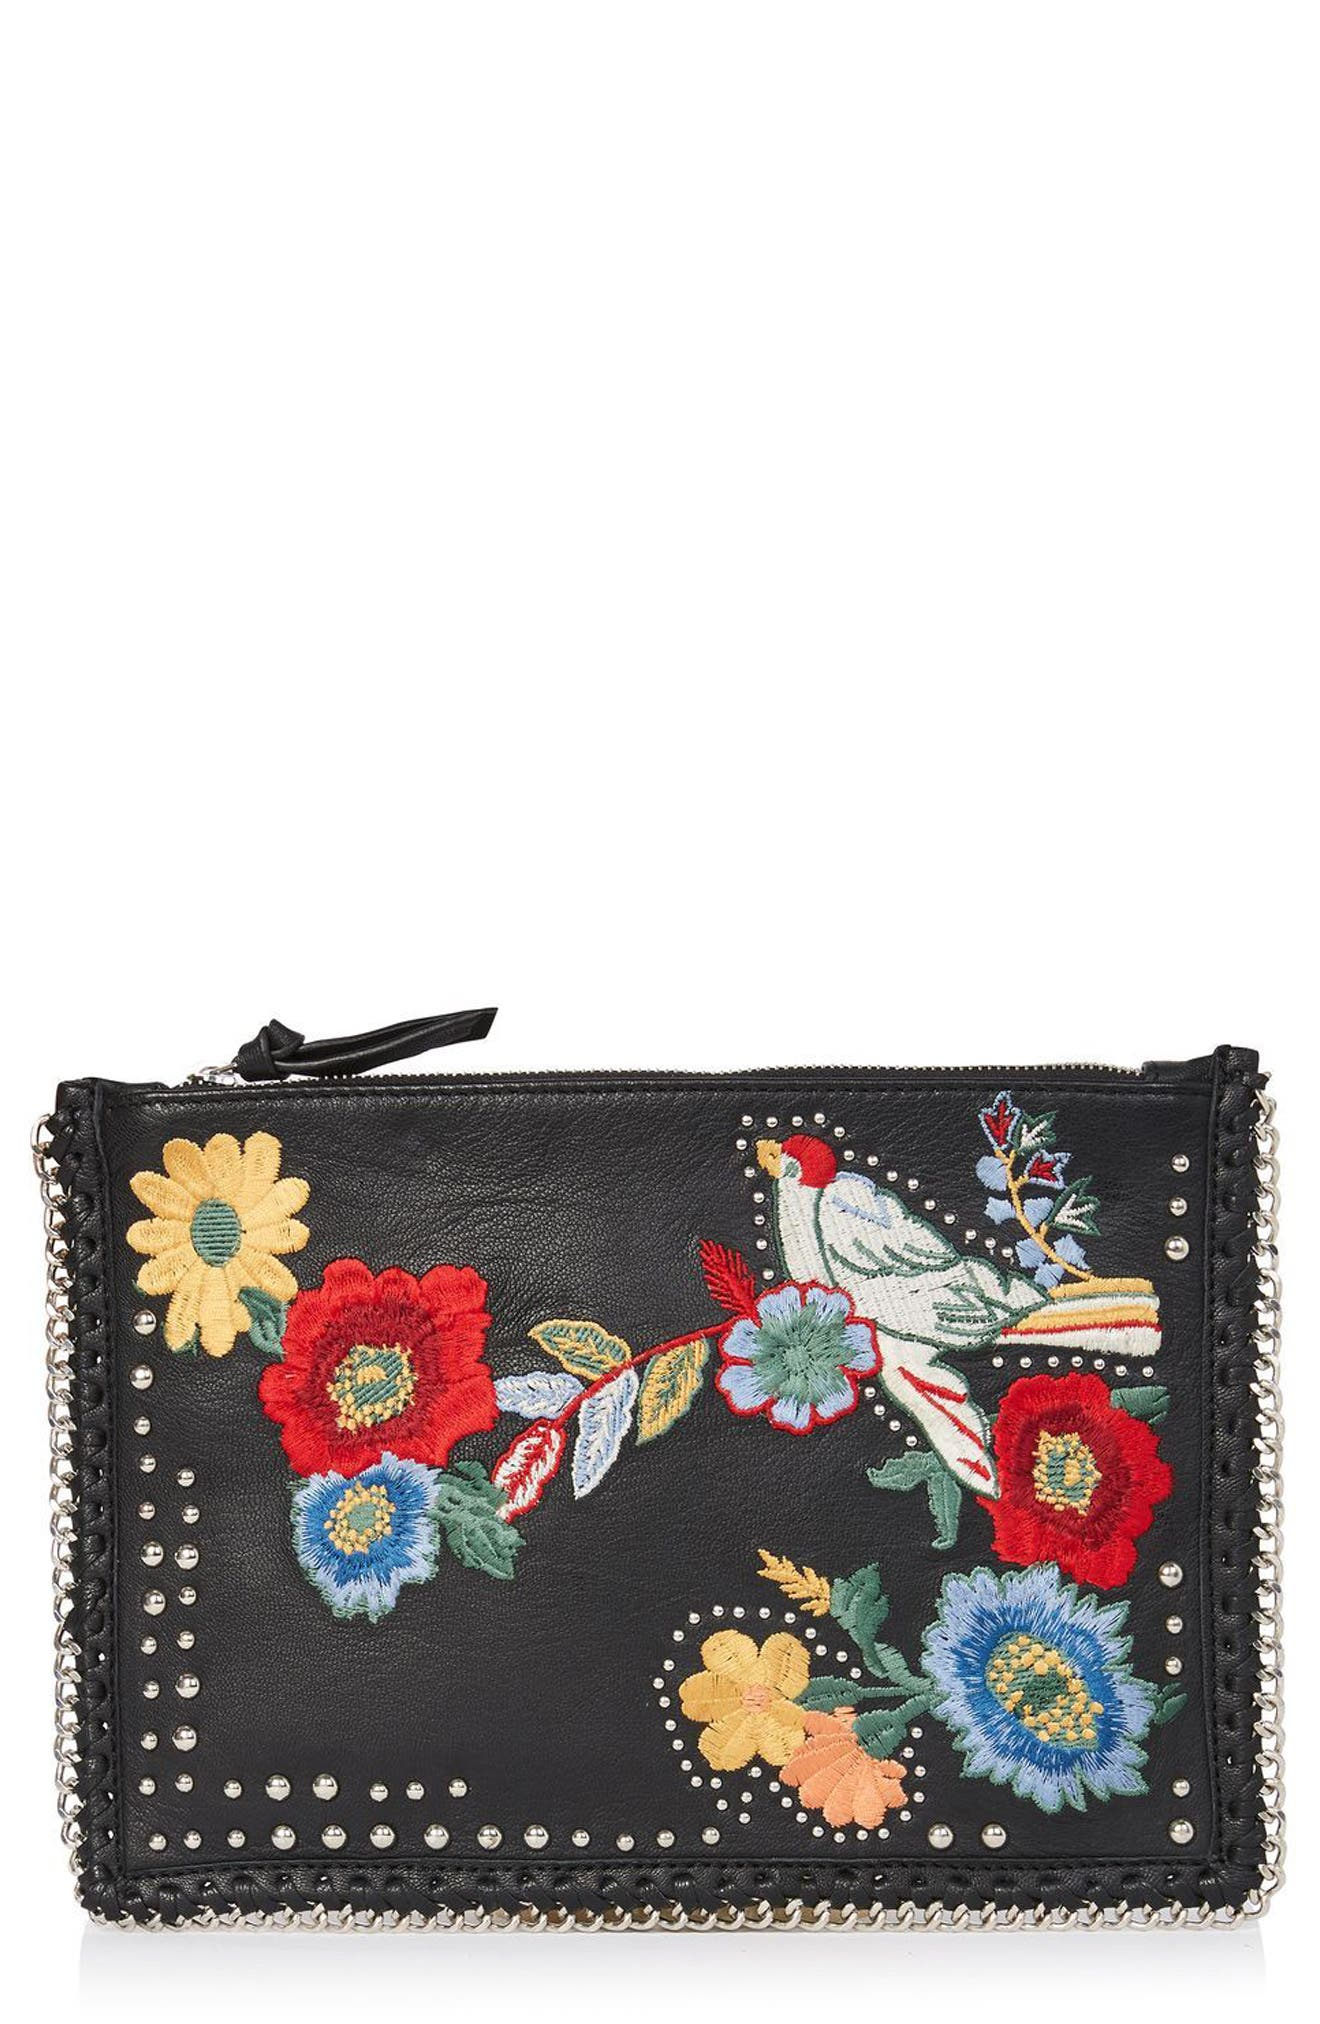 Oto Embroidered Leather Crossbody Bag,                             Main thumbnail 1, color,